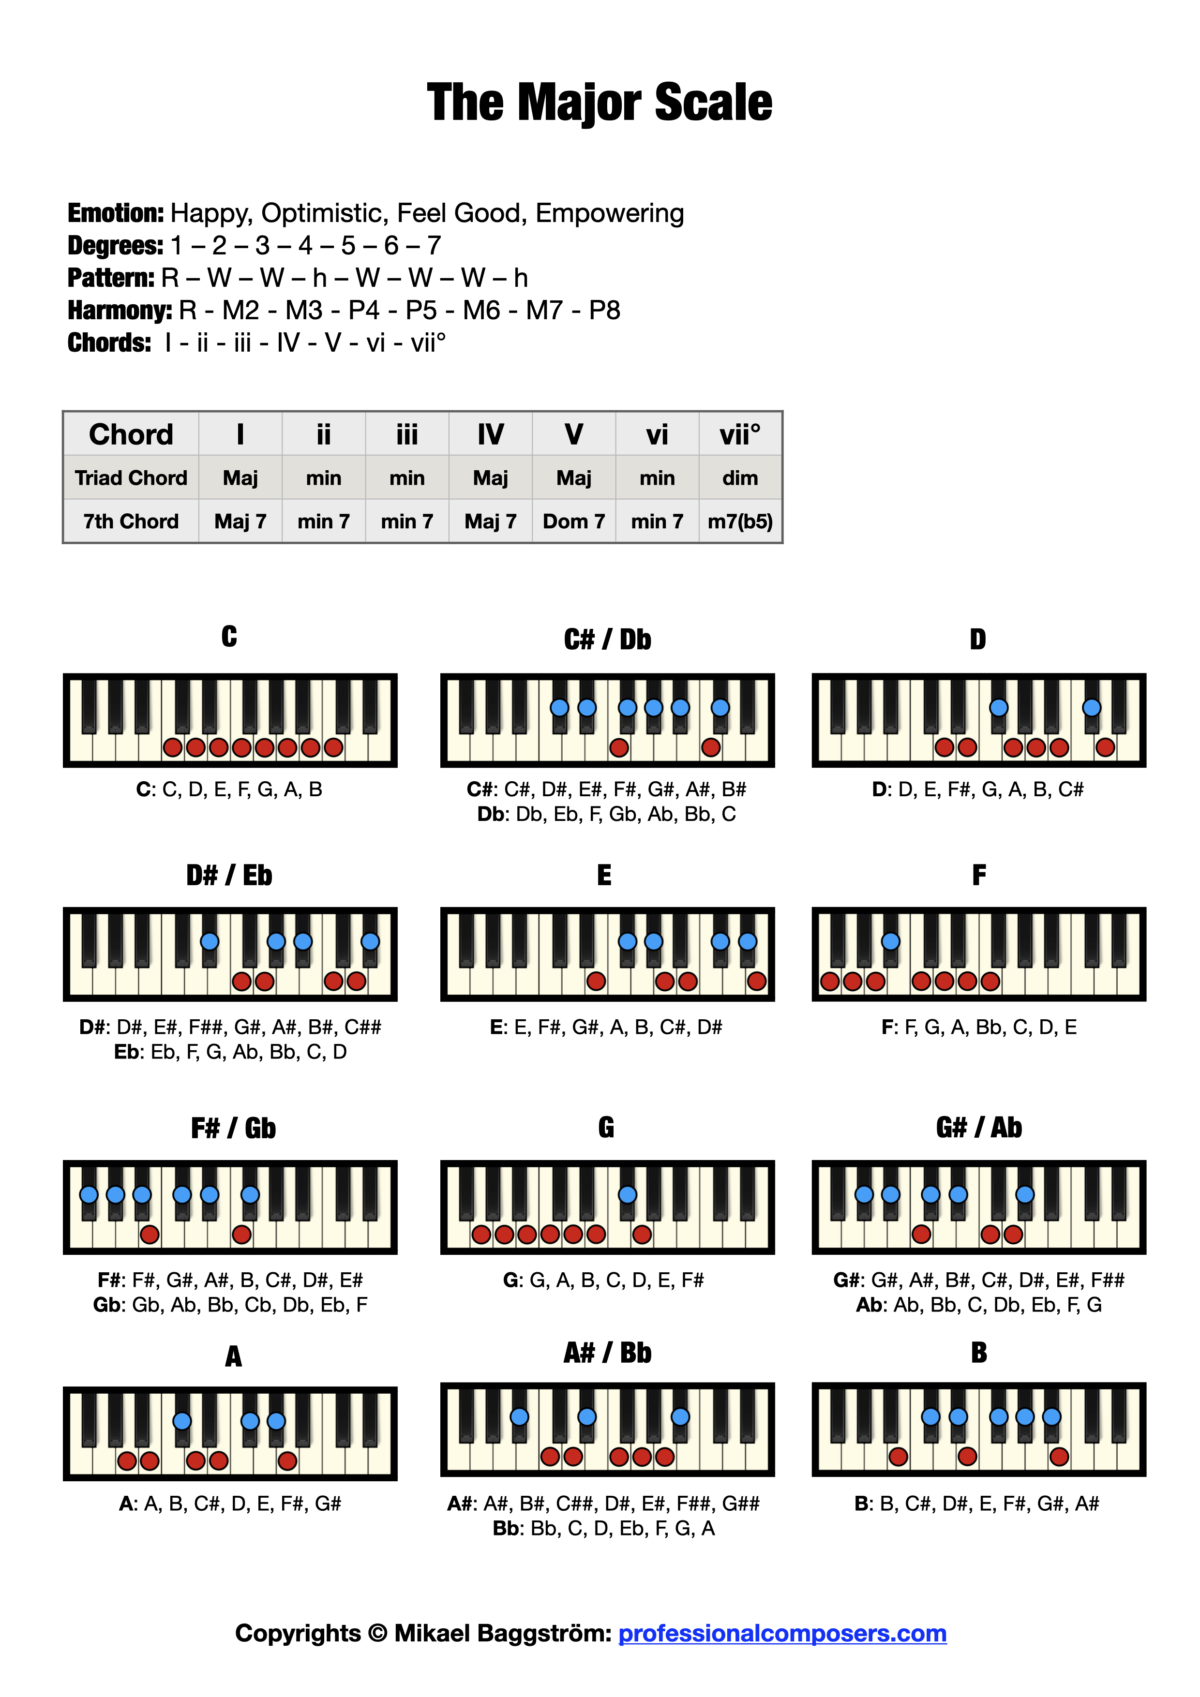 Piano Scale Chart - The Major Scale